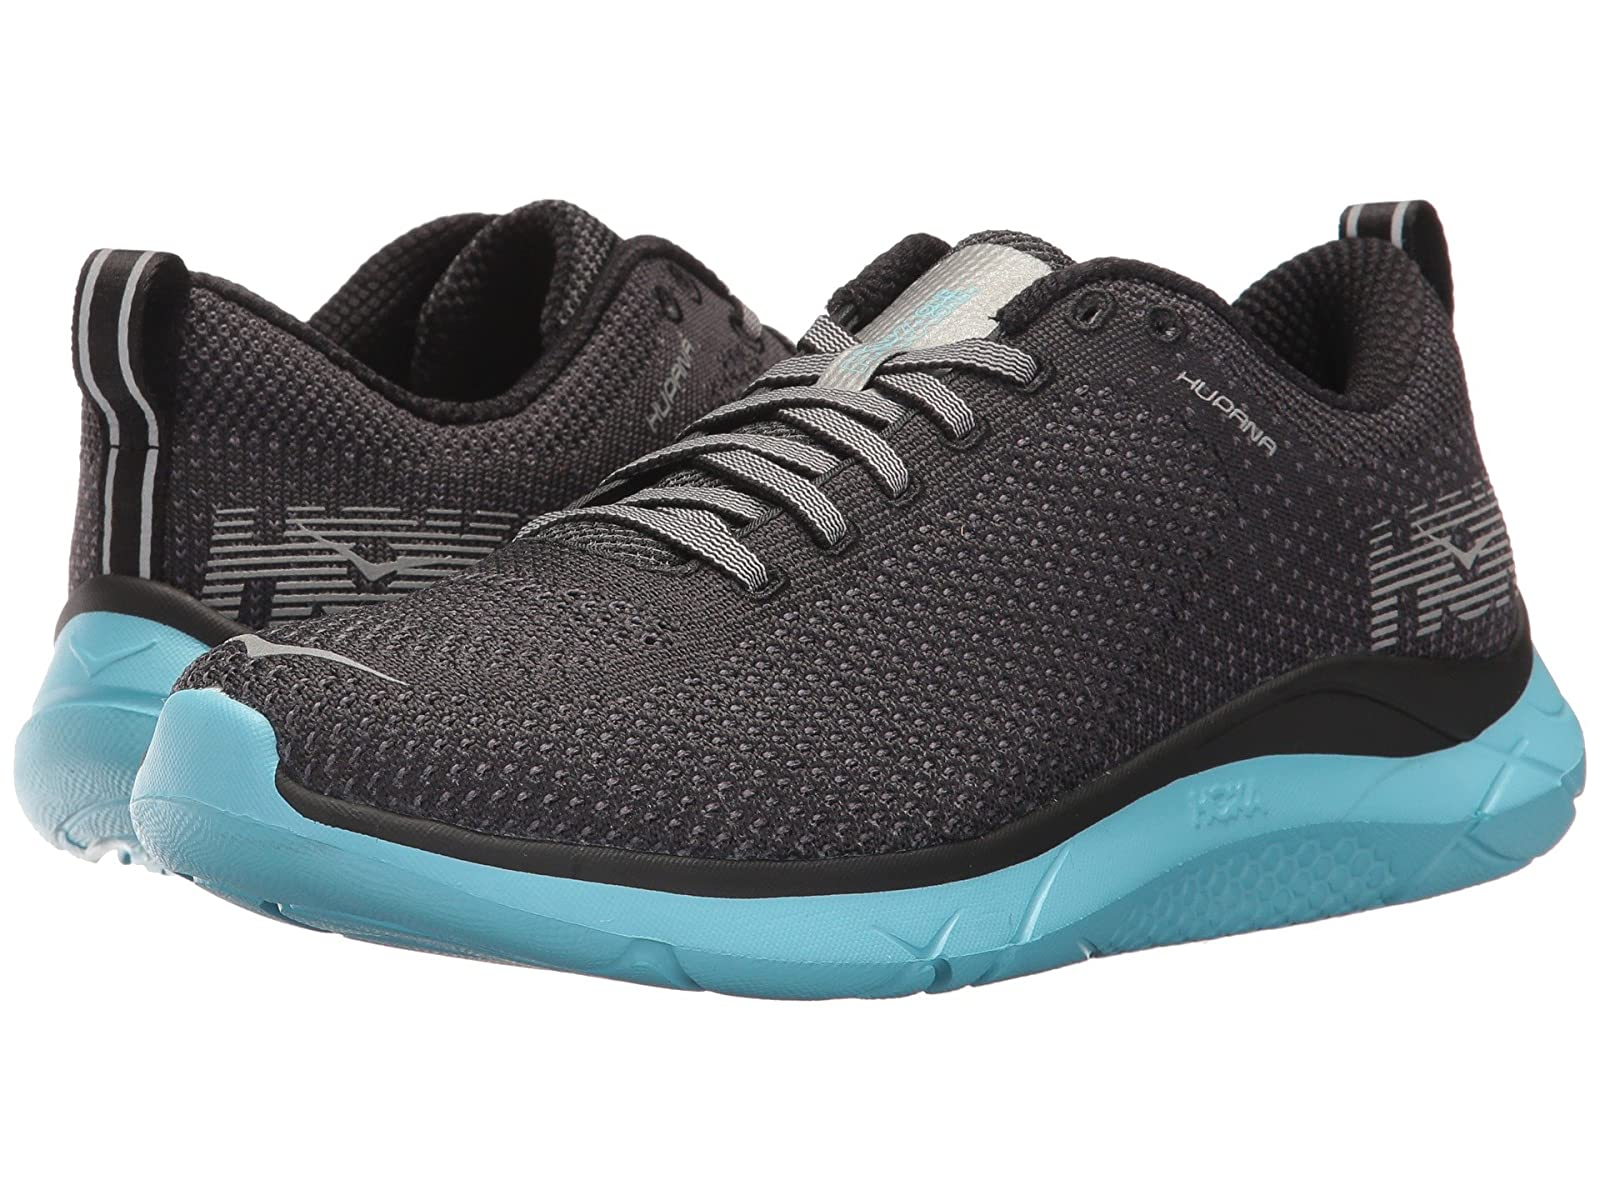 Hoka One One Hupana 2Atmospheric grades have affordable shoes